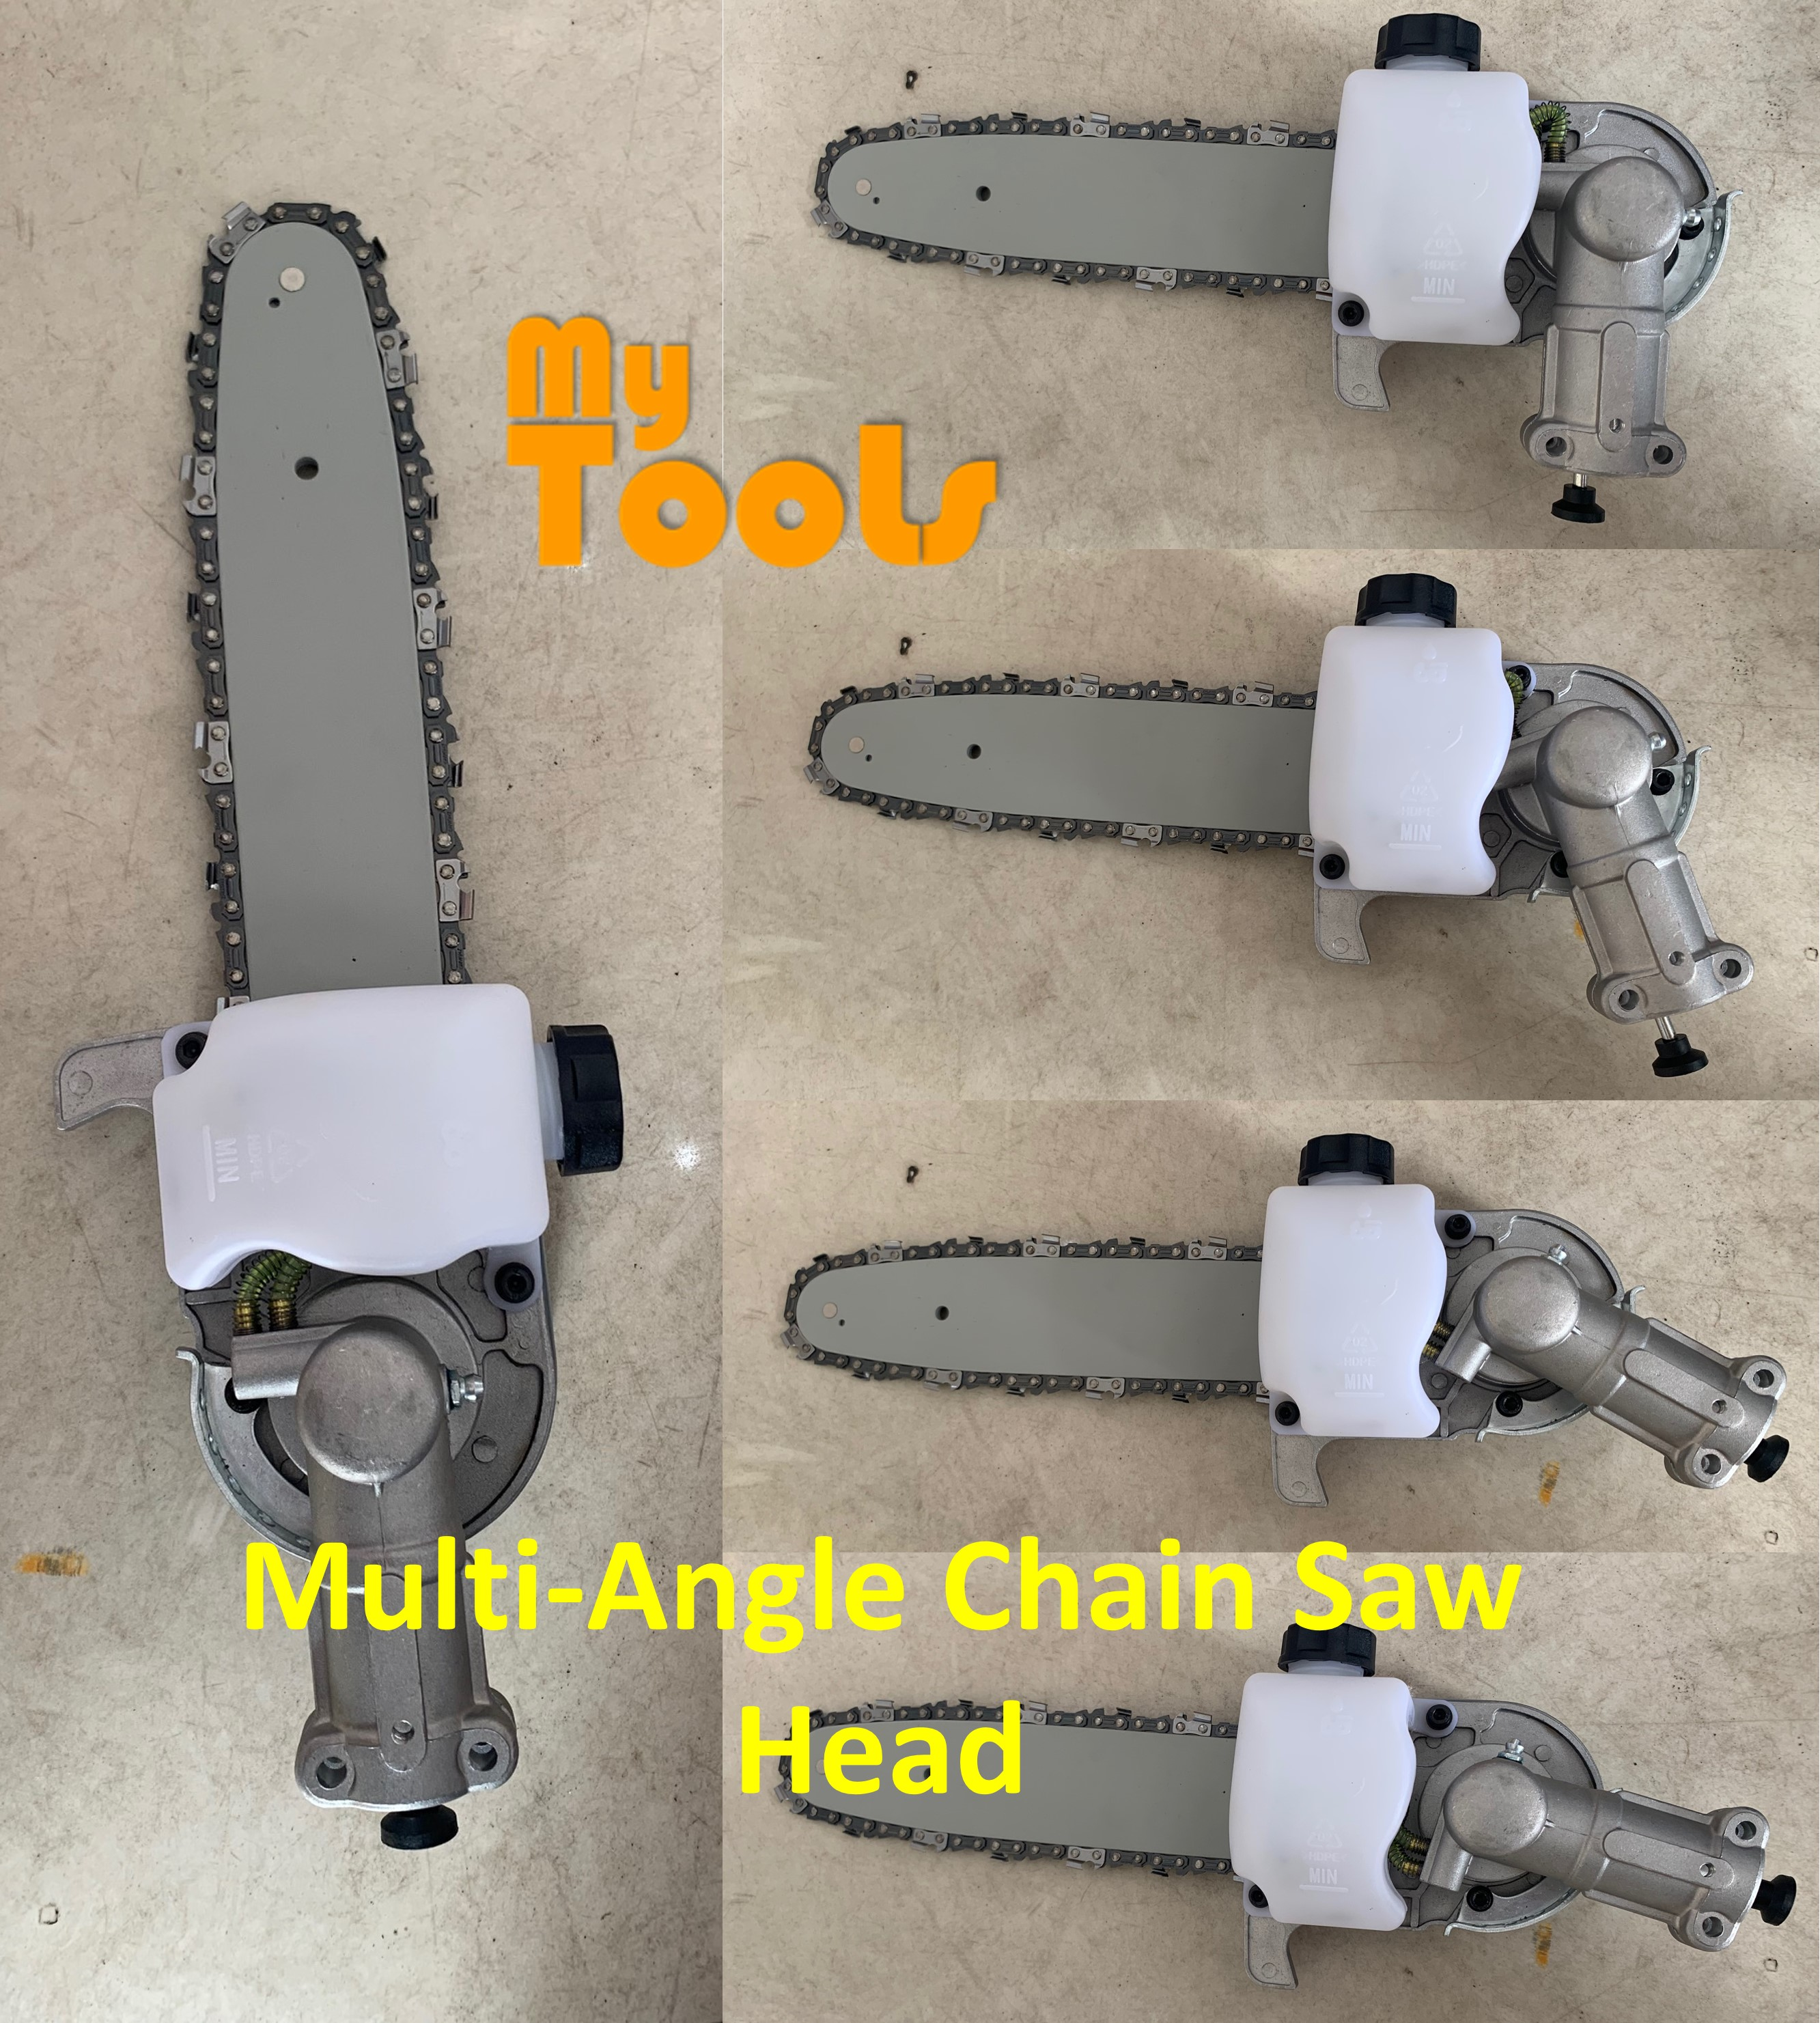 Mytools Multi-Angle Chainsaw Gearbox Chain Saw Gear Head Brush Cutter Attachment